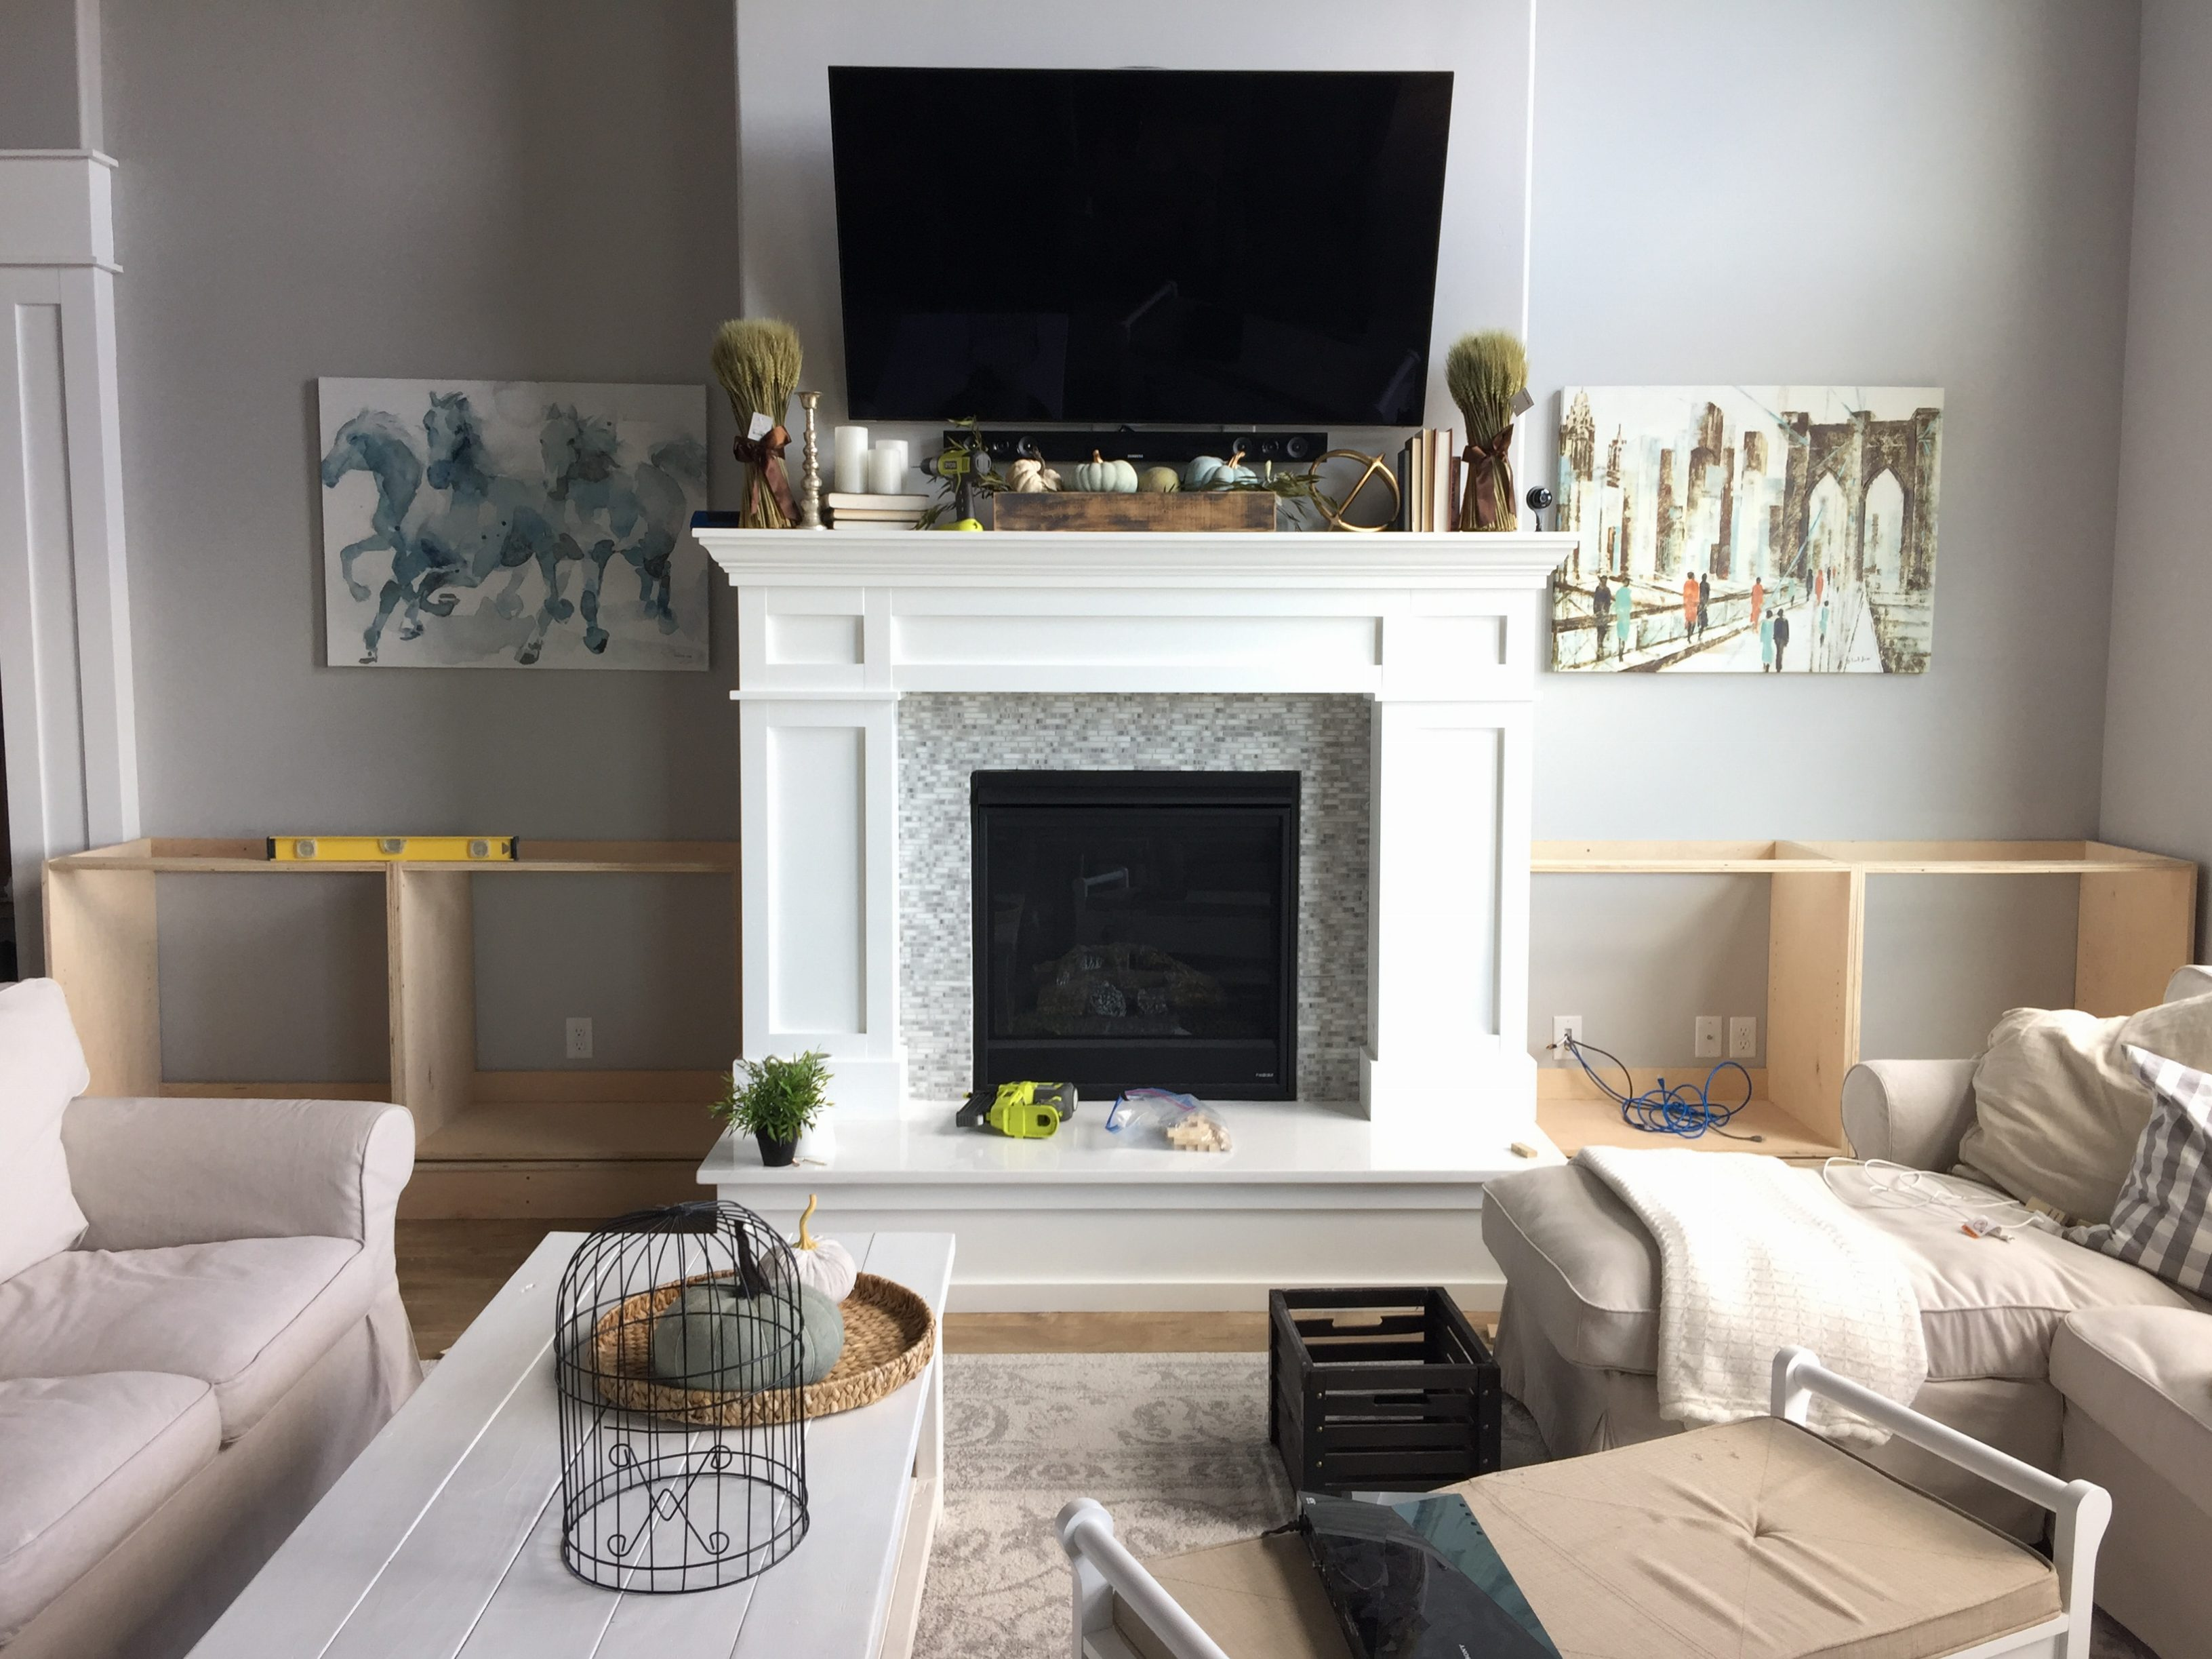 What To Put On Fireplace Mantel Built Ins Around The Fireplace Part 1 - Honeybear Lane